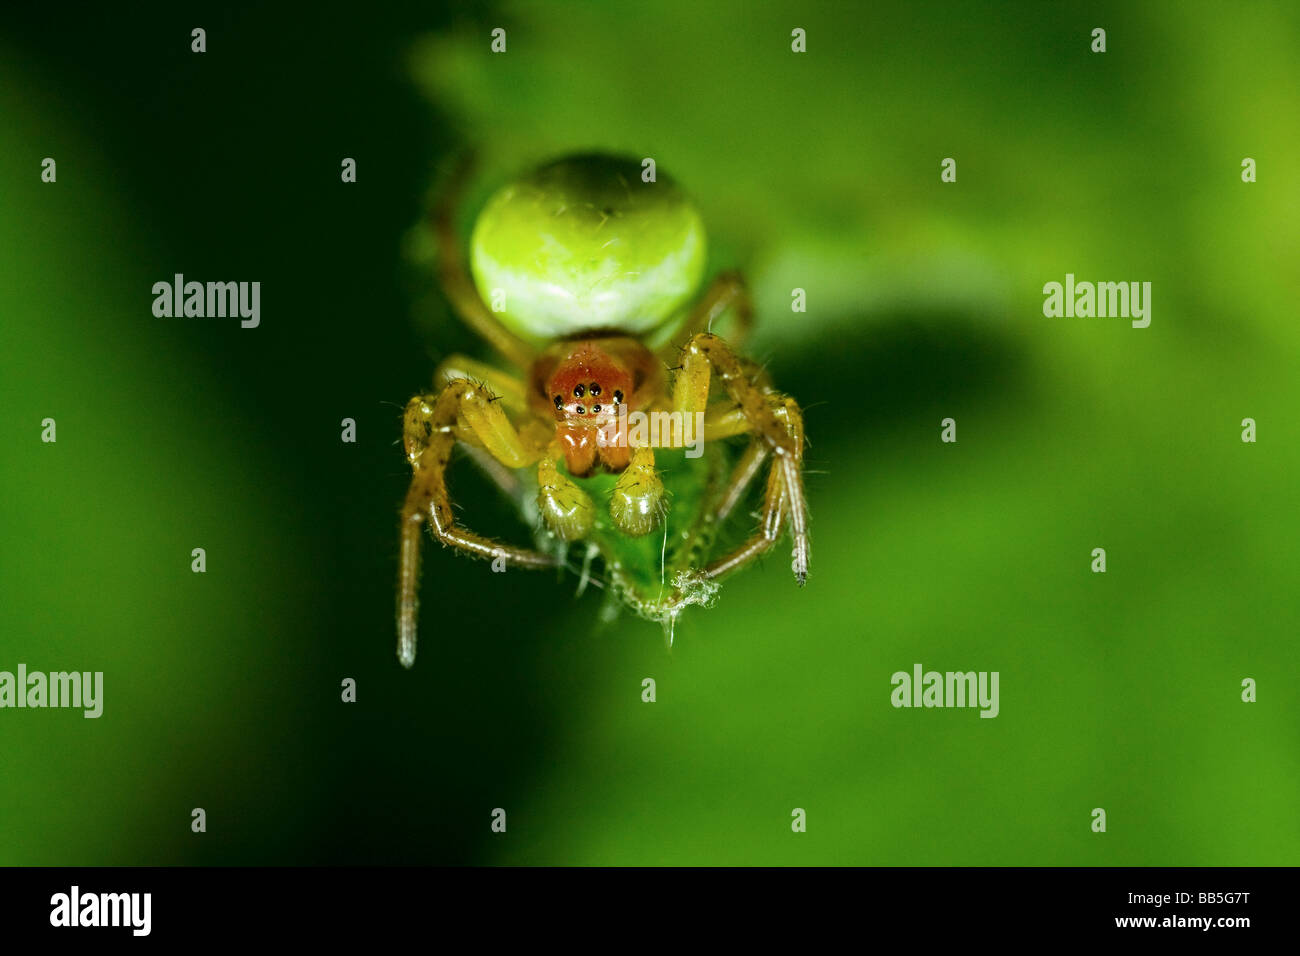 A close up of a cucumber green spider - Stock Image